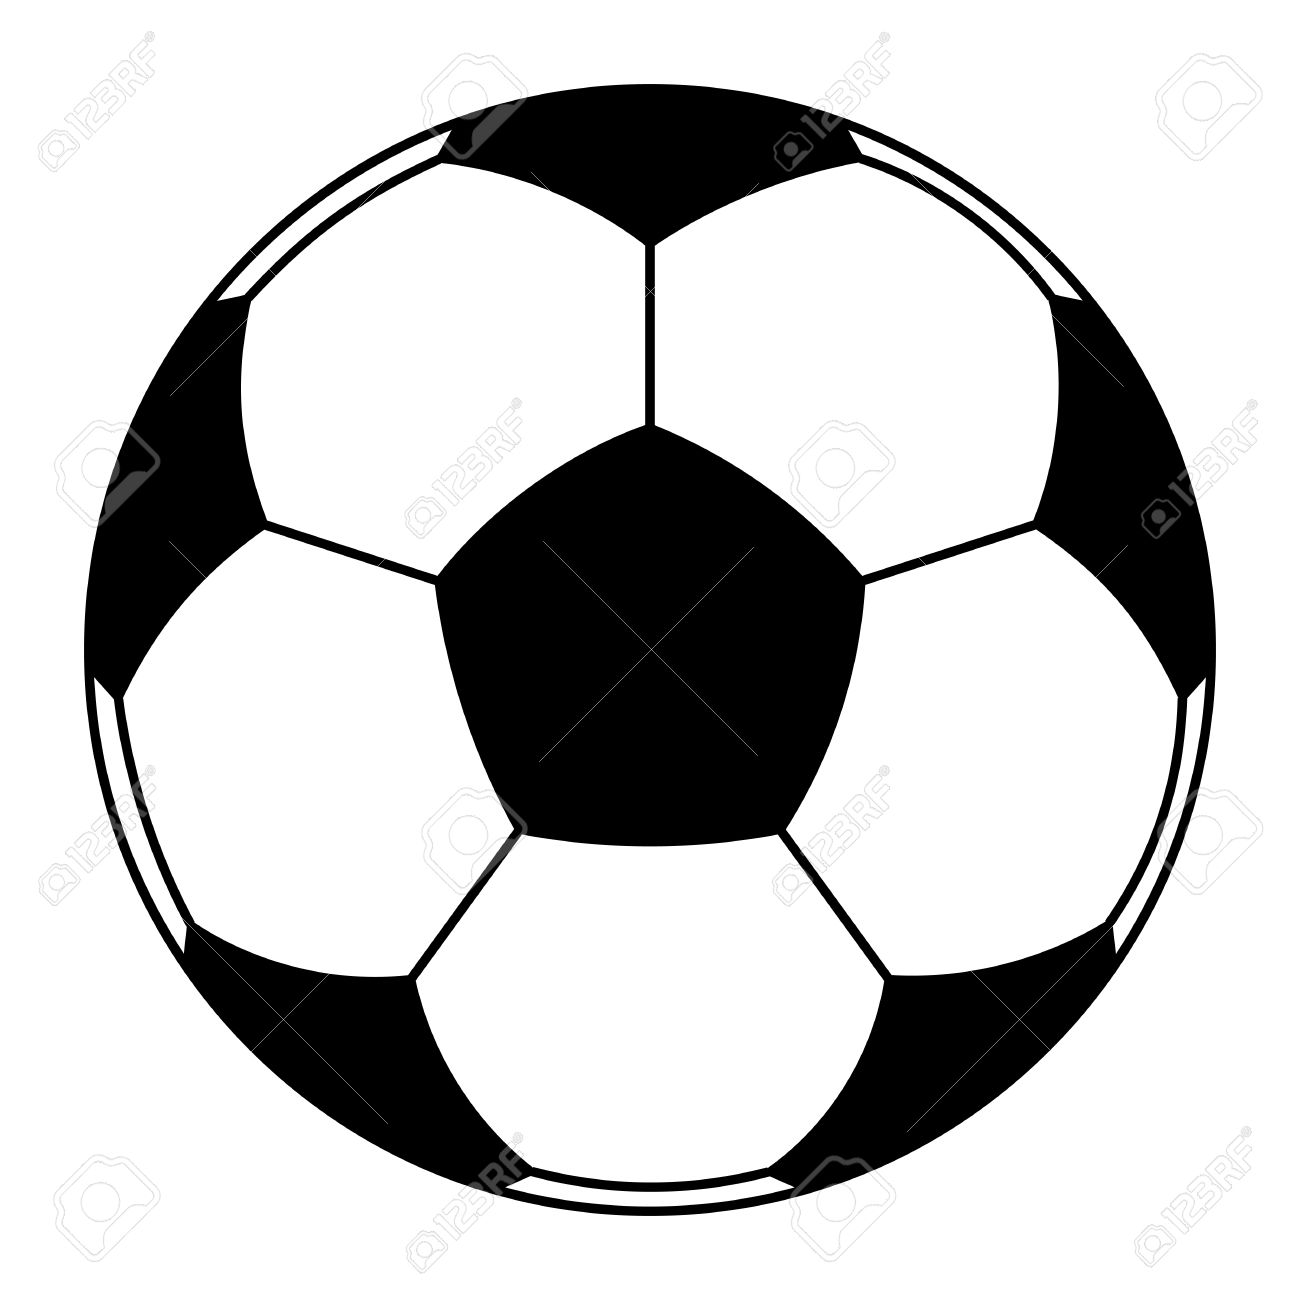 football ball soccer illustration clip art royalty free cliparts rh 123rf com clip art of football mascots clip art of football mascots